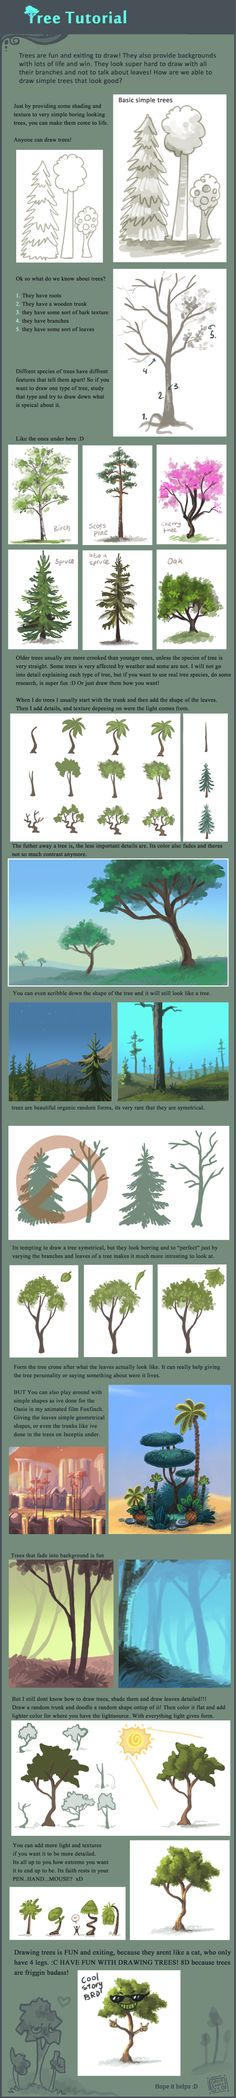 Tree tutorial by griffsnuff on @DeviantArt